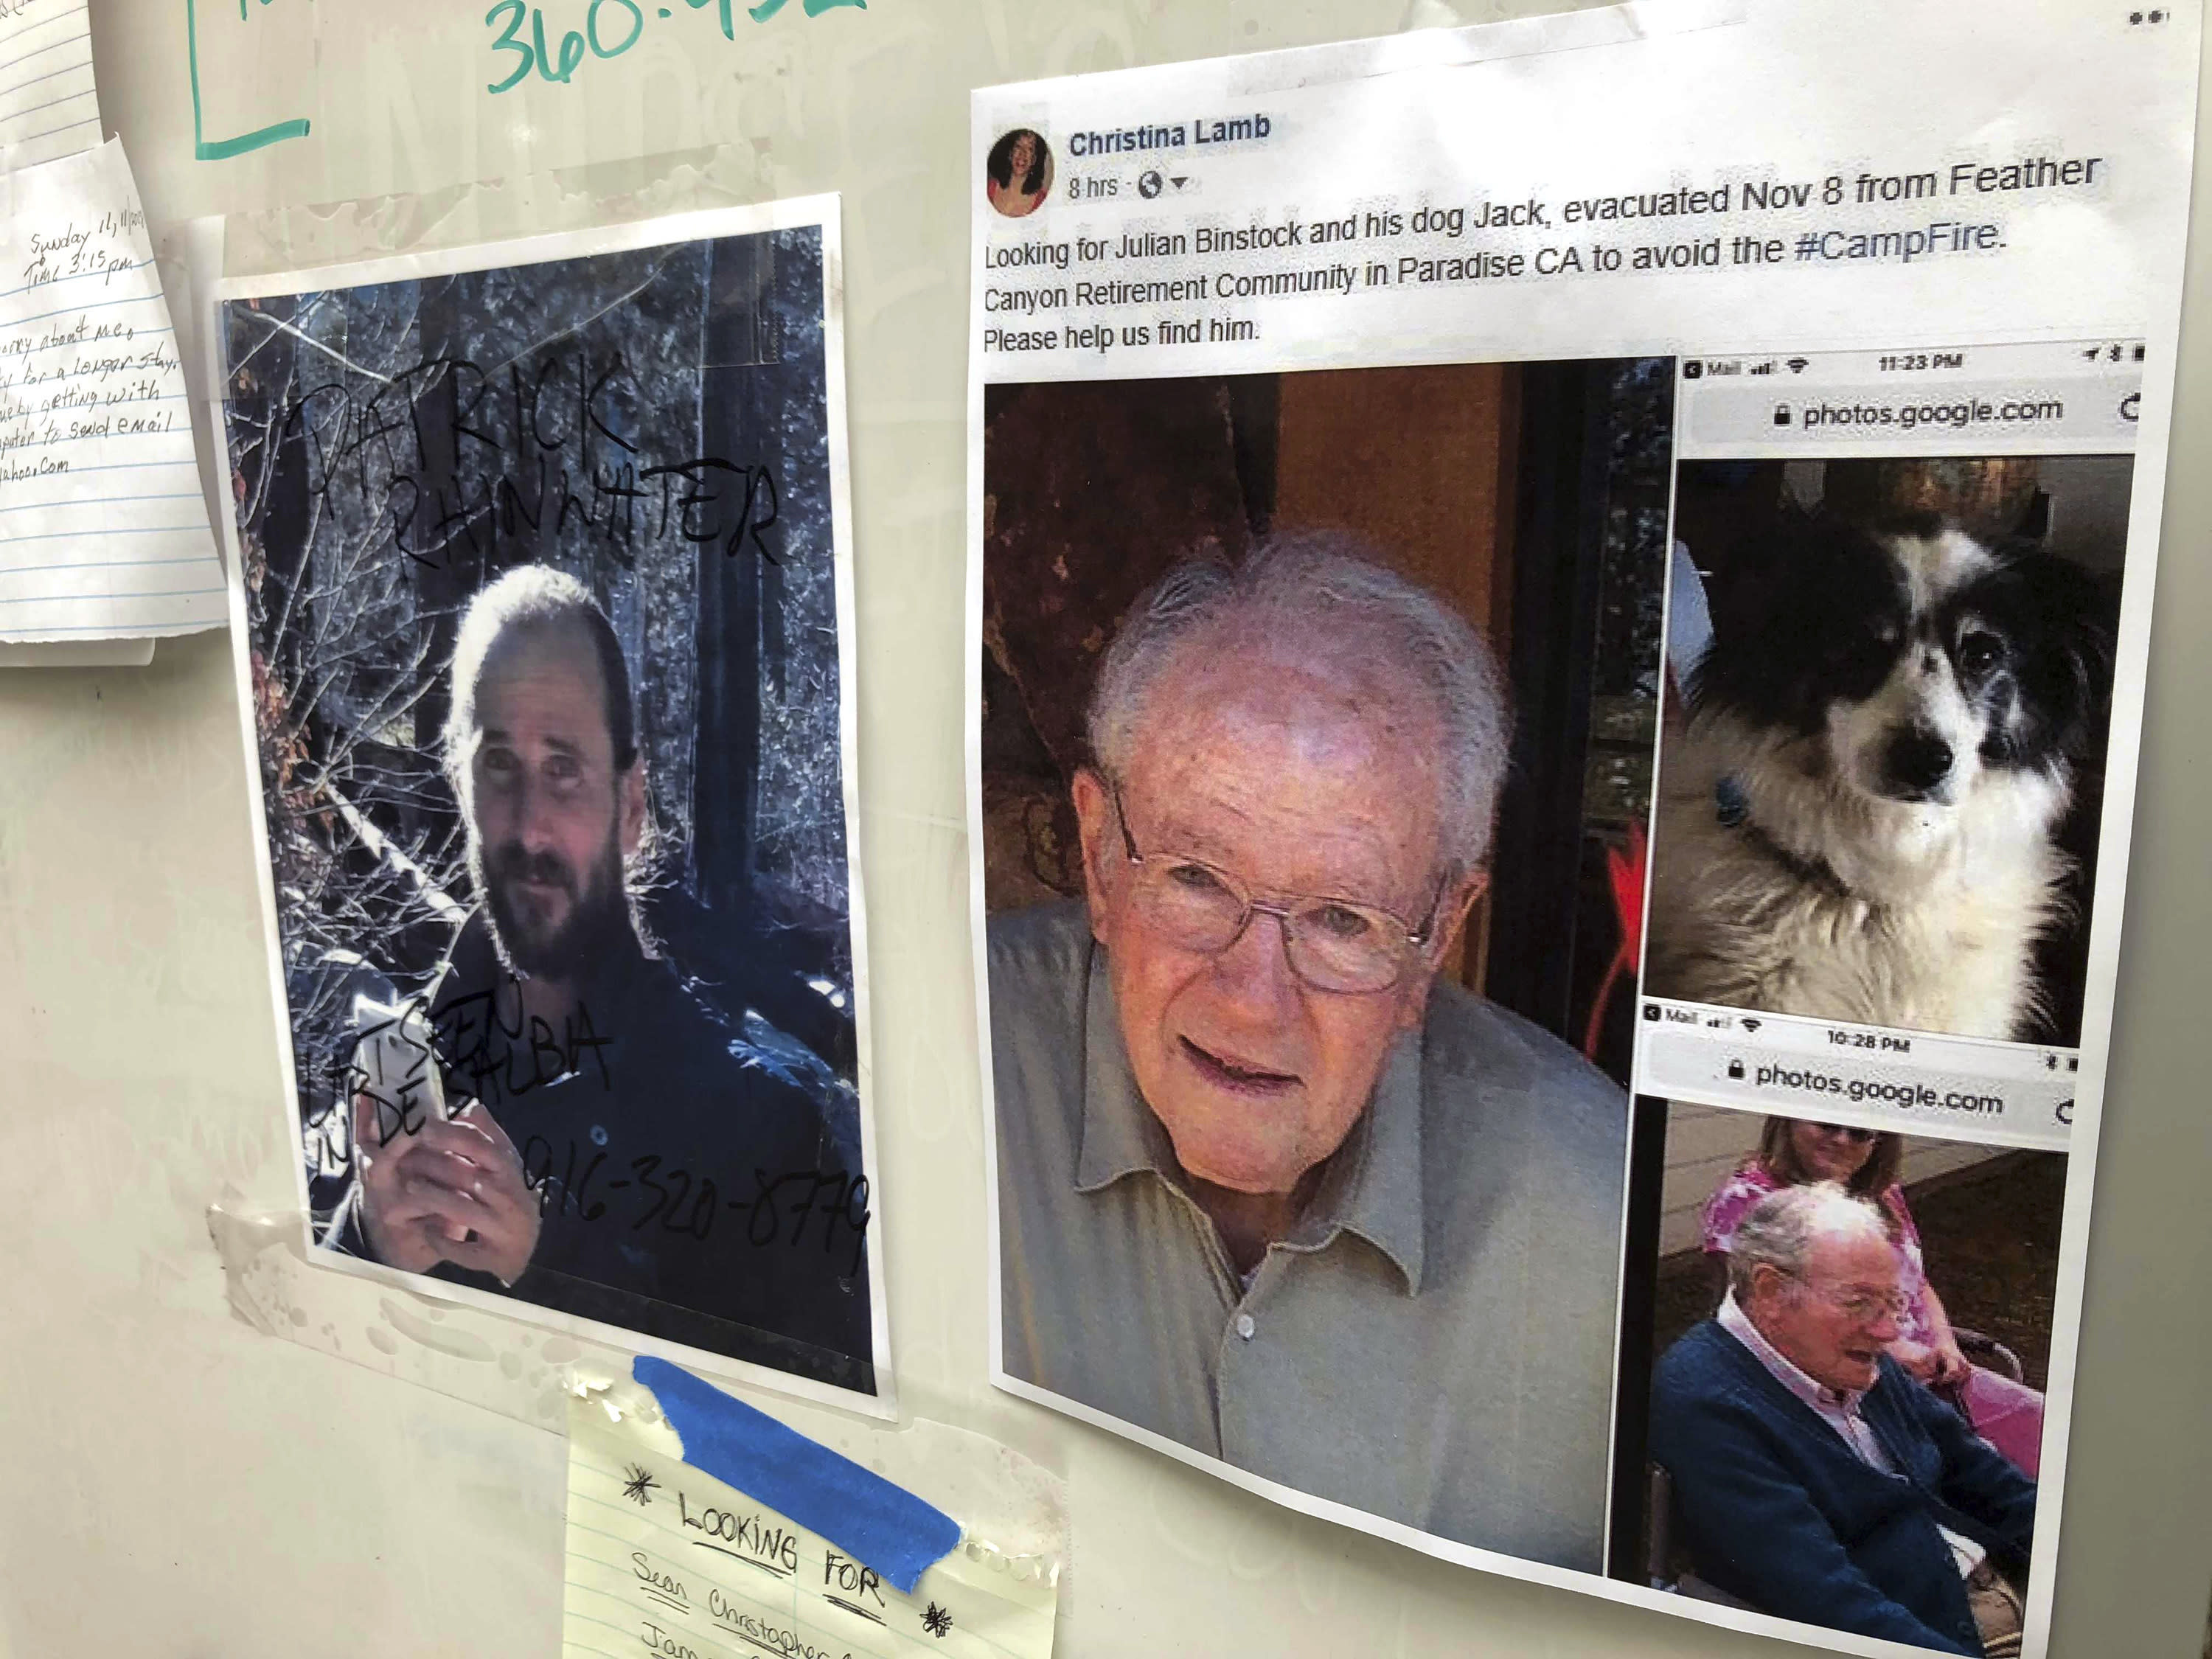 FILE - In this Nov. 13, 2018 file photo, messages are shown on a bulletin board at The Neighborhood Church in Chico, Calif., as evacuees, family and friends search for people missing from the northern California wildfire. Northern California officials have struggled to get a handle on the number of missing from the deadliest wildfire in at least a century in the United States. Authorities continue to log hundreds of reports by people who couldn't reach loved ones in the aftermath of the Camp Fire in Butte County. (AP Photo/Gillian Flaccus, File)